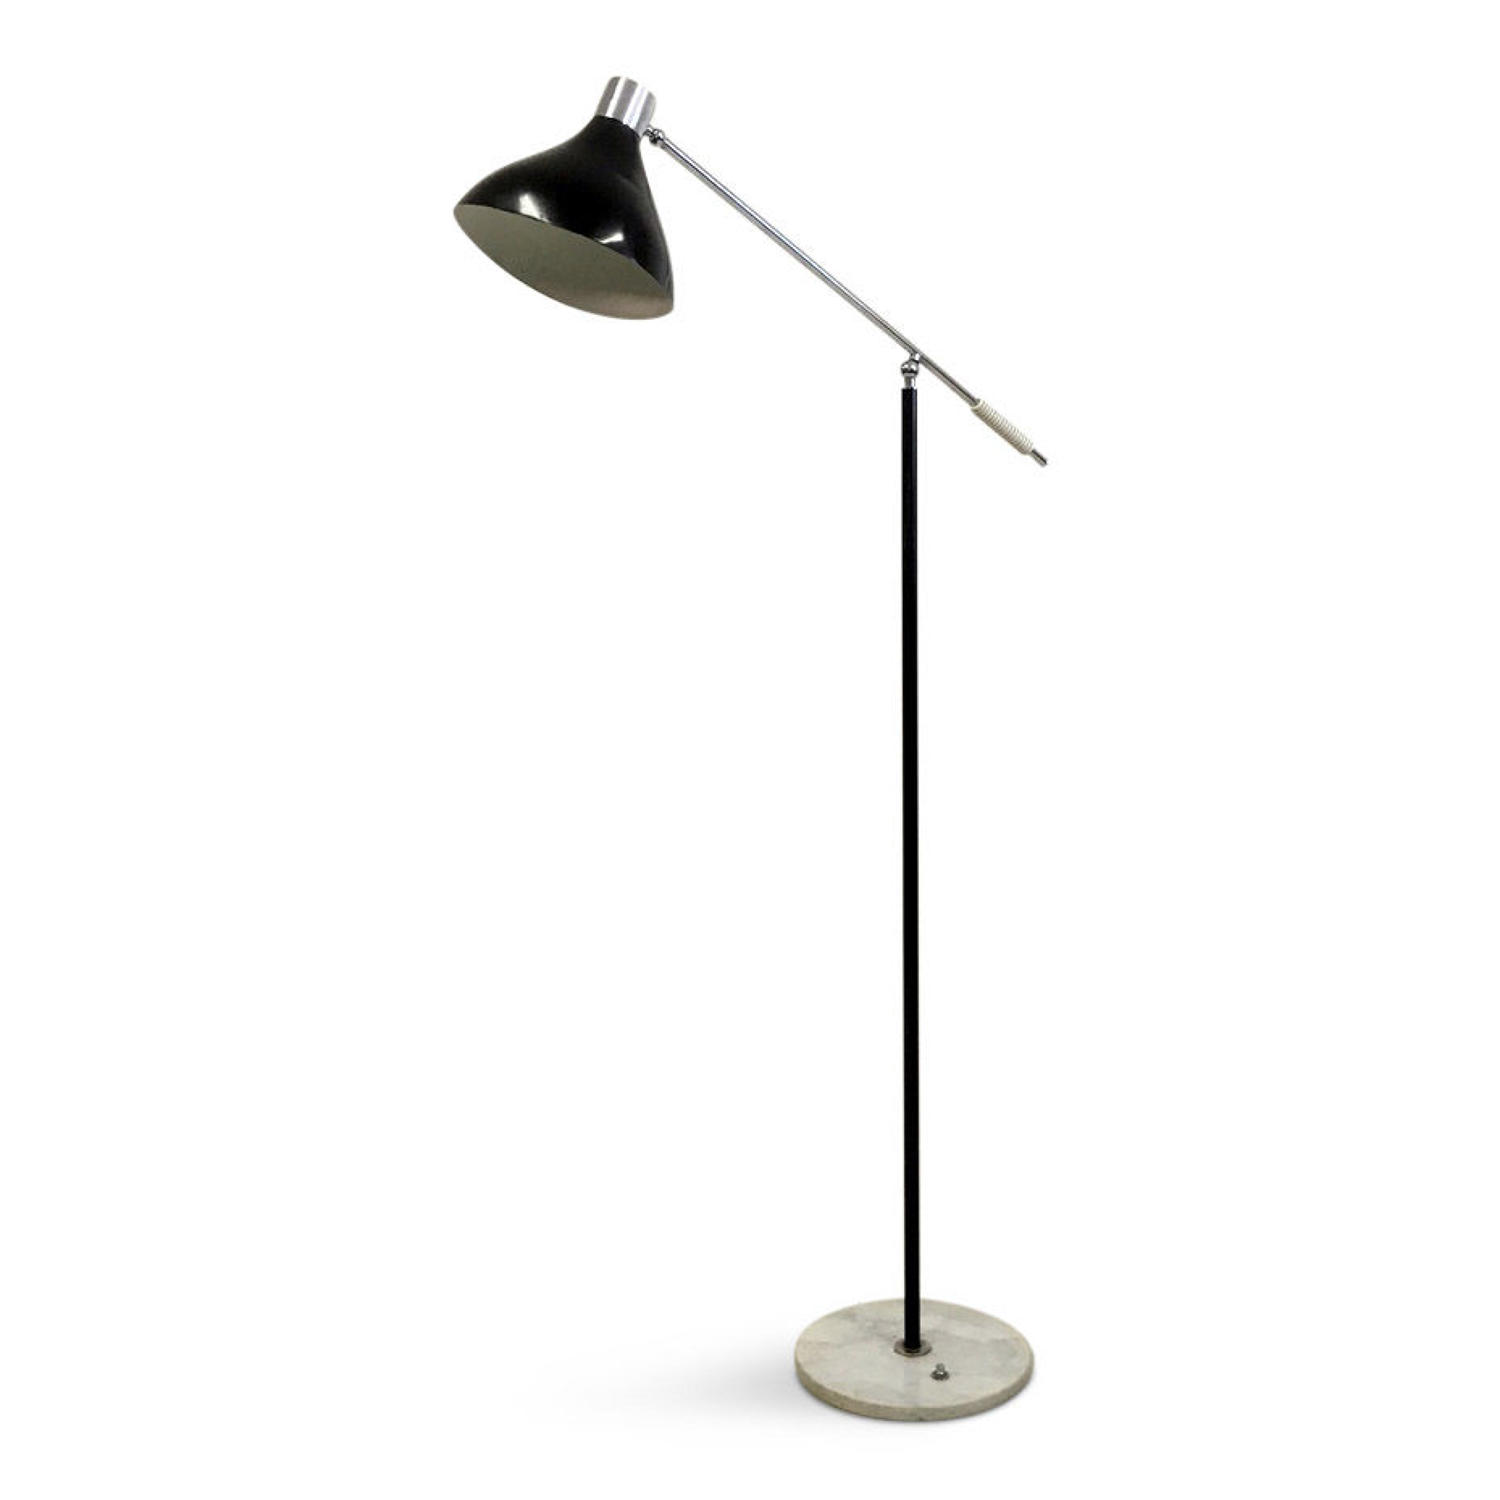 1960s Italian chrome and enamel floor lamp